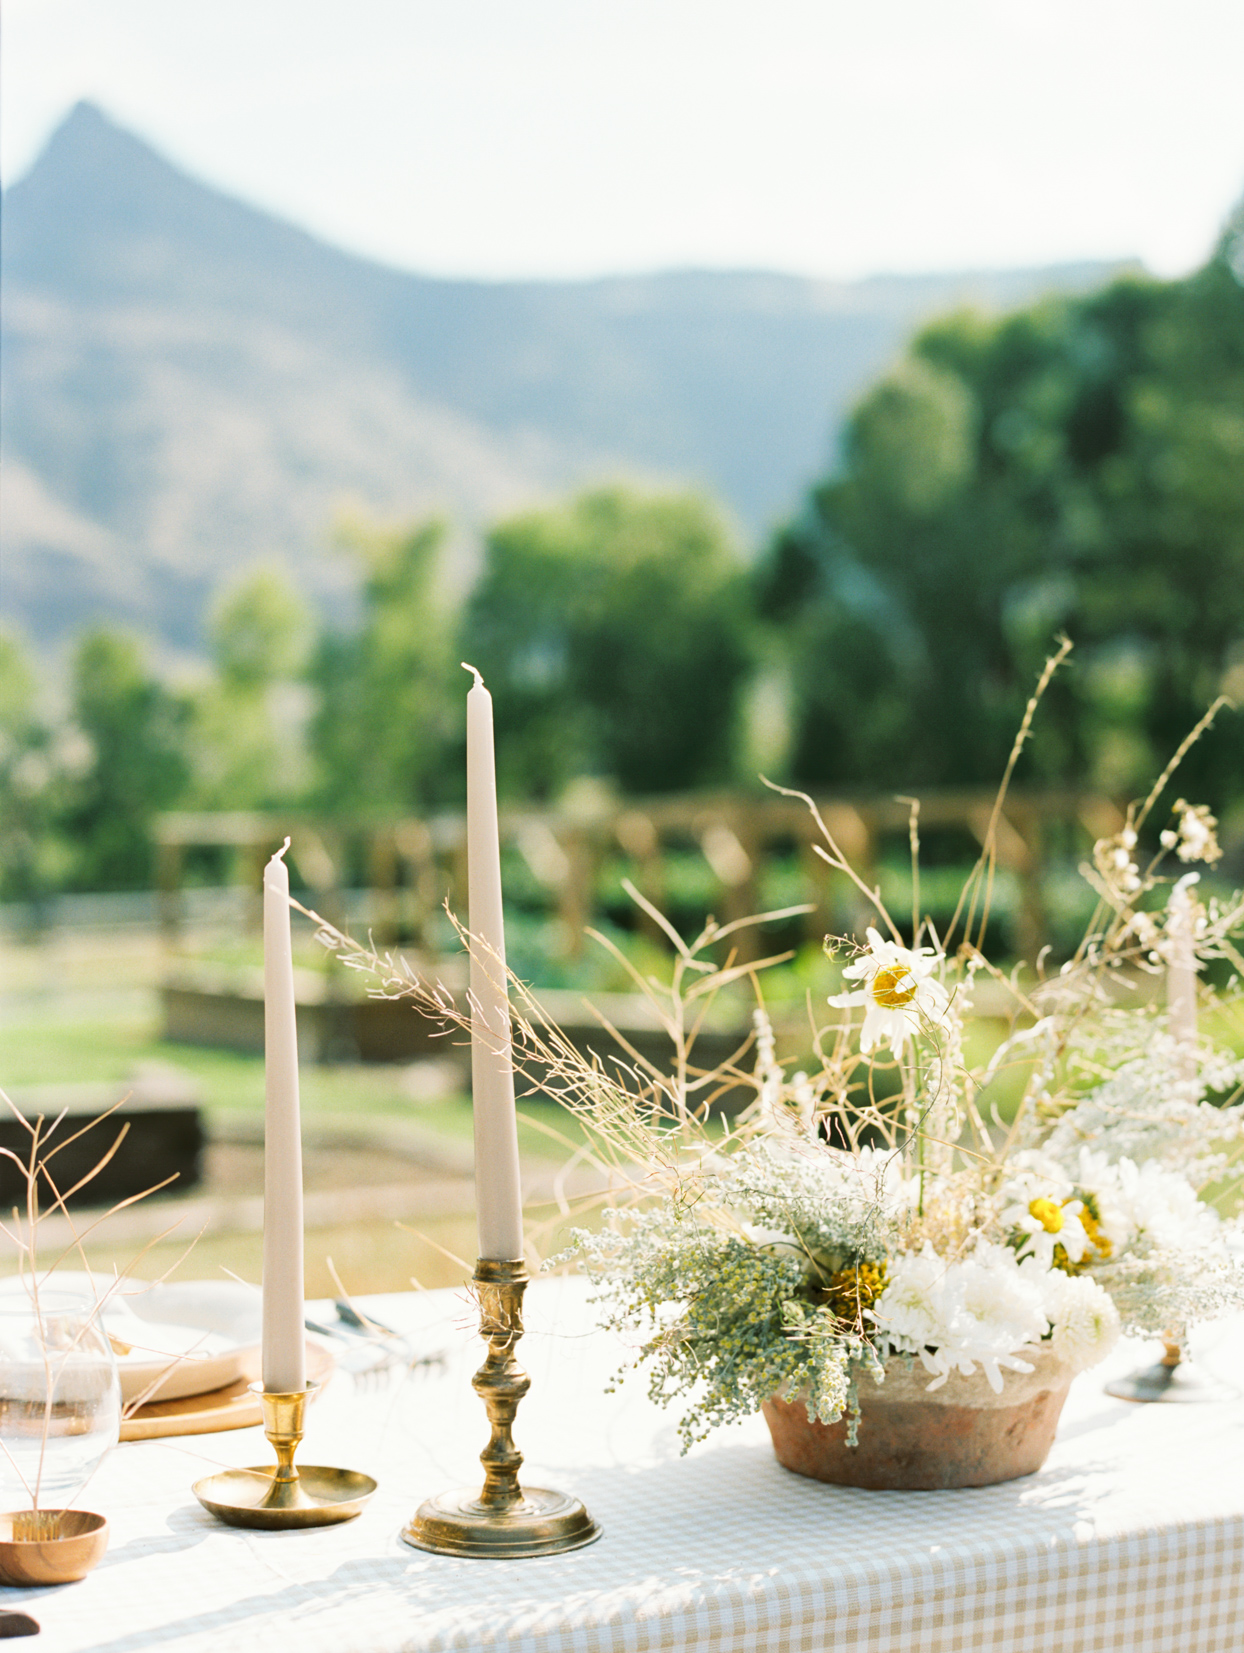 rustic table setting with plaid cloth, candles, wild bouquet